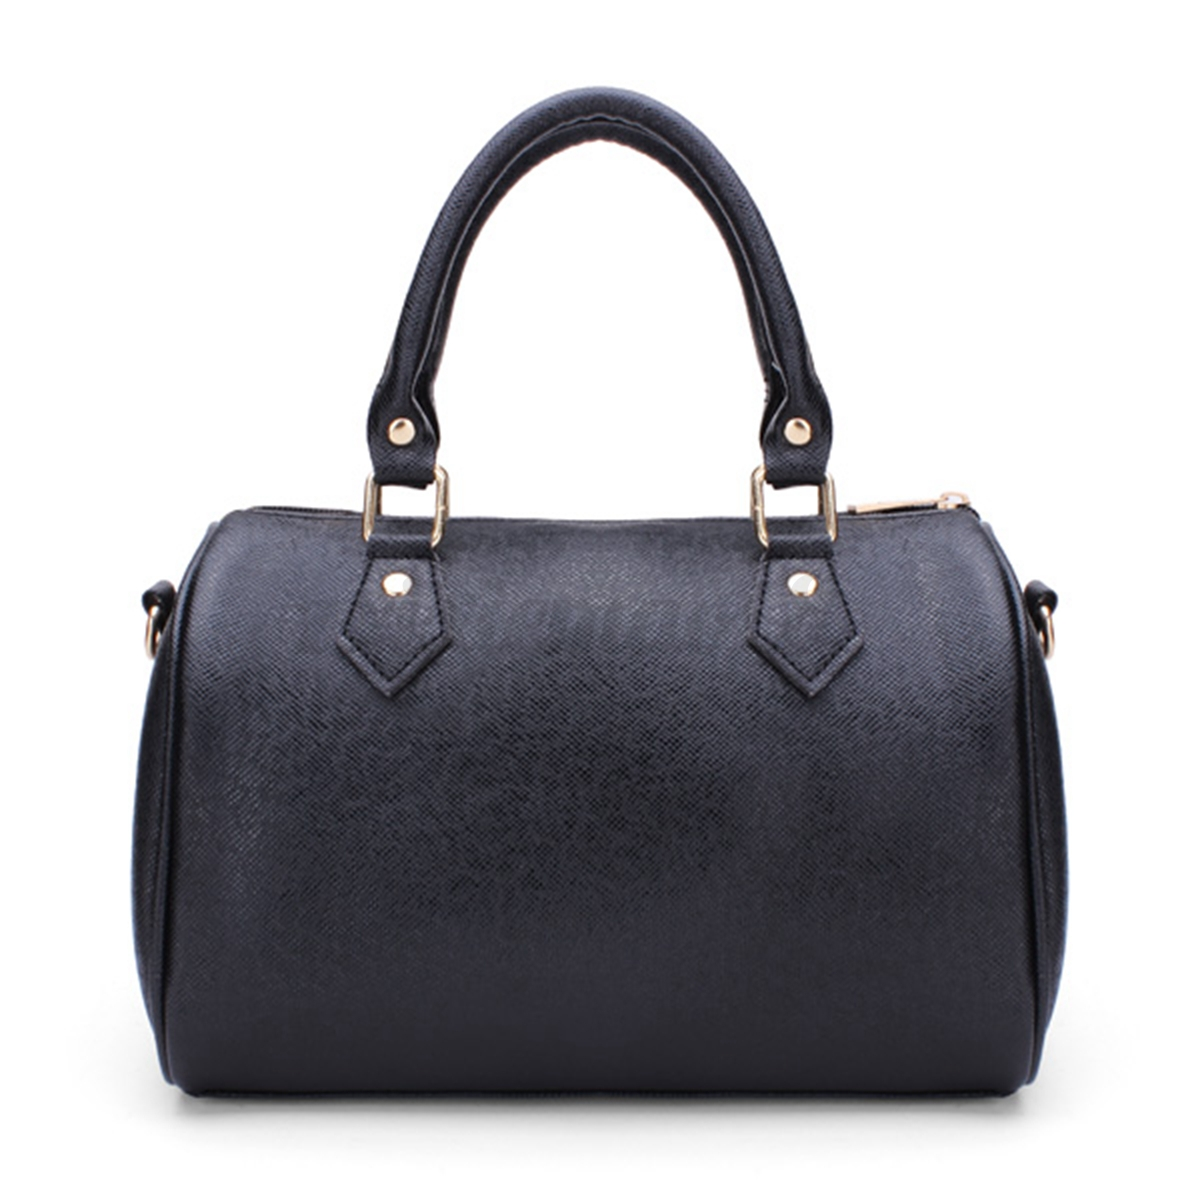 Shop a wide selection of styles and brands of women's handbags at europegamexma.gq Free shipping and free returns on eligible items. Shop a wide selection of styles and brands of women's handbags at europegamexma.gq Free shipping and free returns on eligible items. From The Community.